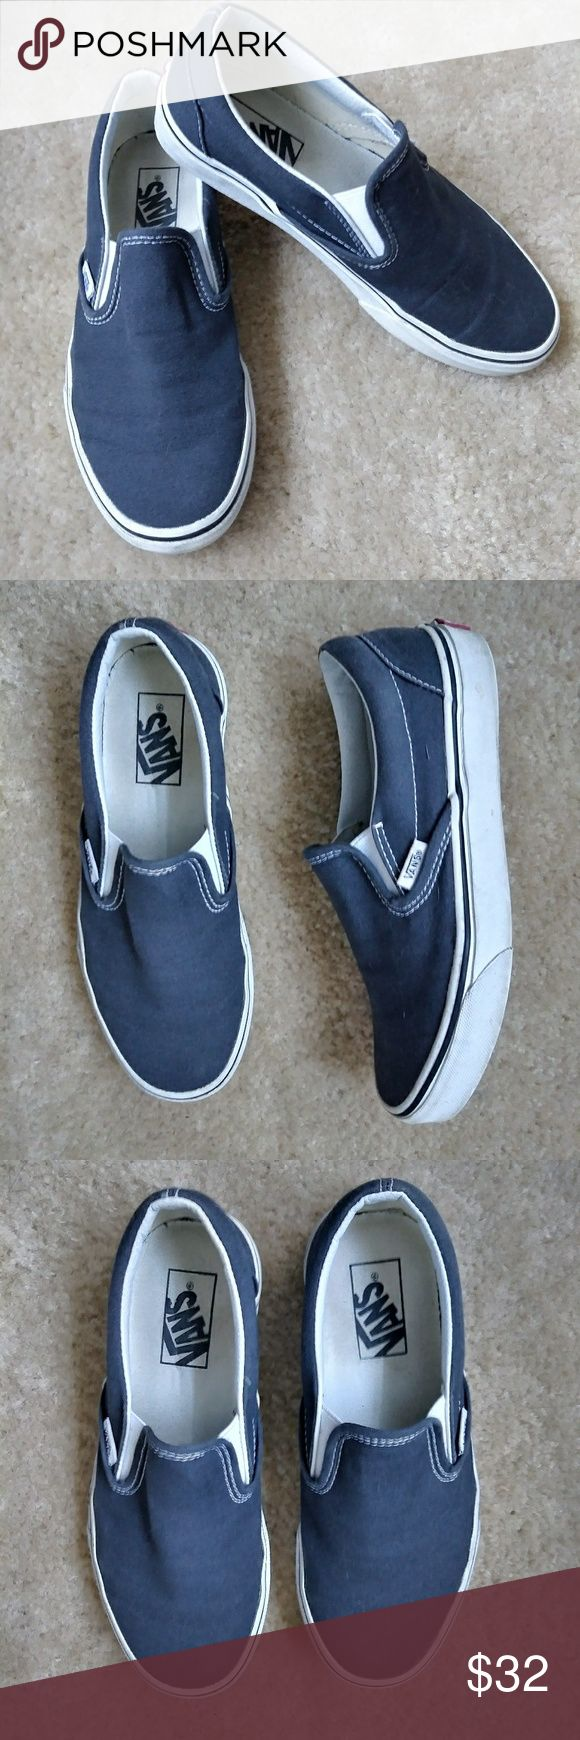 VANS charcoal grey slip ons Men's 5.5 women's size 7 dark charcoal grey slip on vans. Love these but they're too snug for me, I'm a 7/7.5 and these are definitely a snug 7. My loss is your gain. Enjoy! Vans Shoes Flats & Loafers